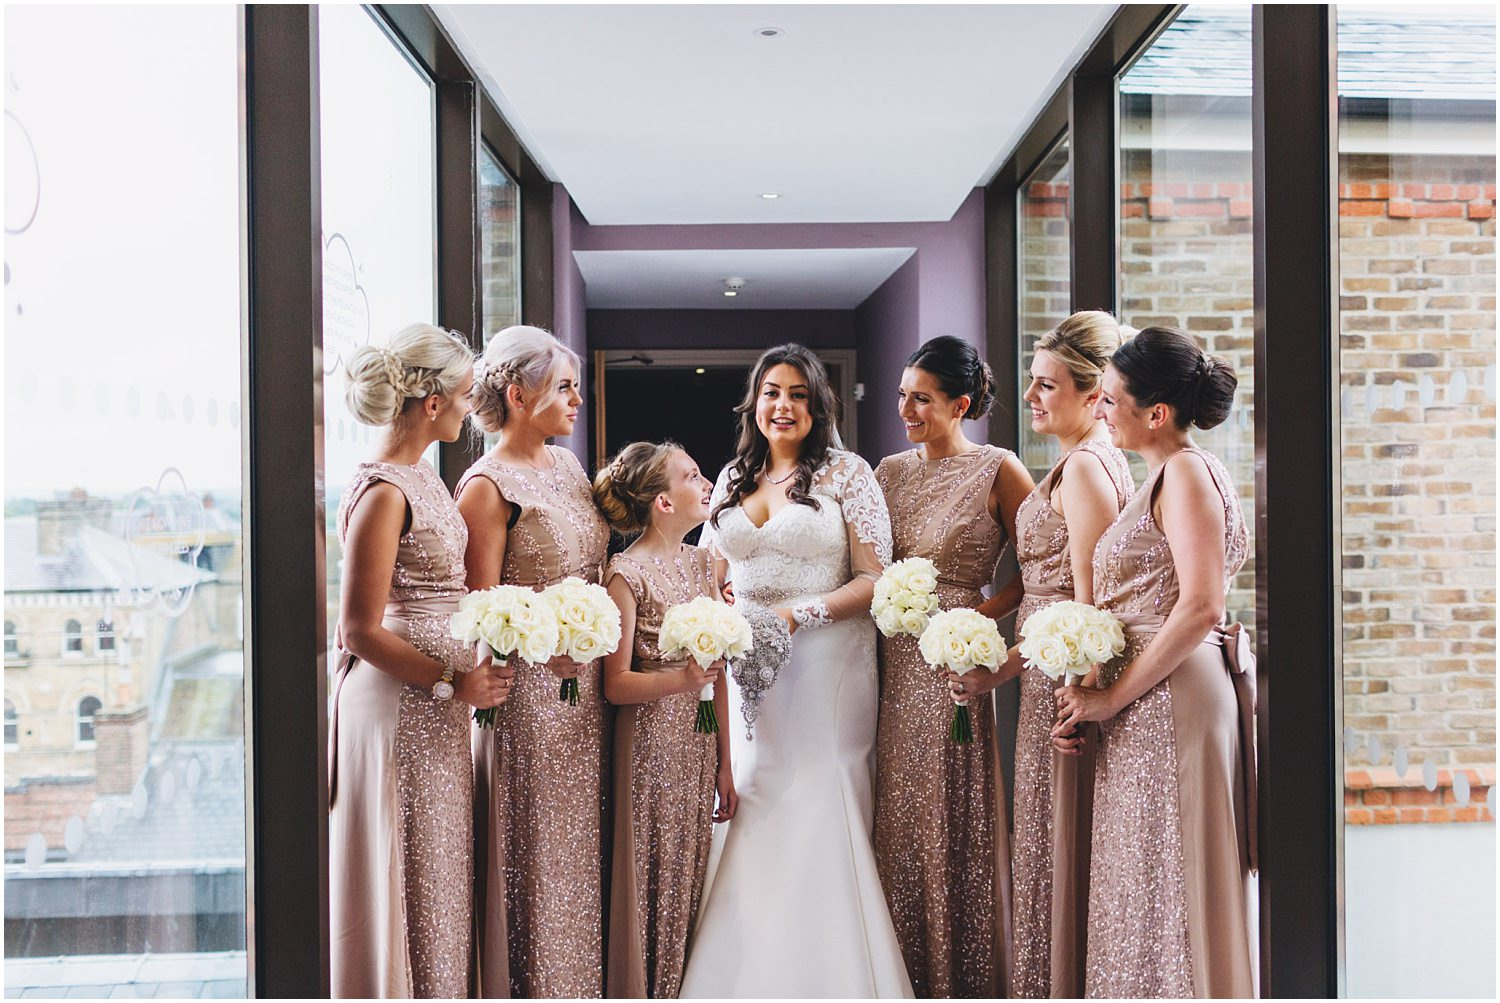 Windsor wedding - bride and bridesmaids at the MacDonald Windsor hotel